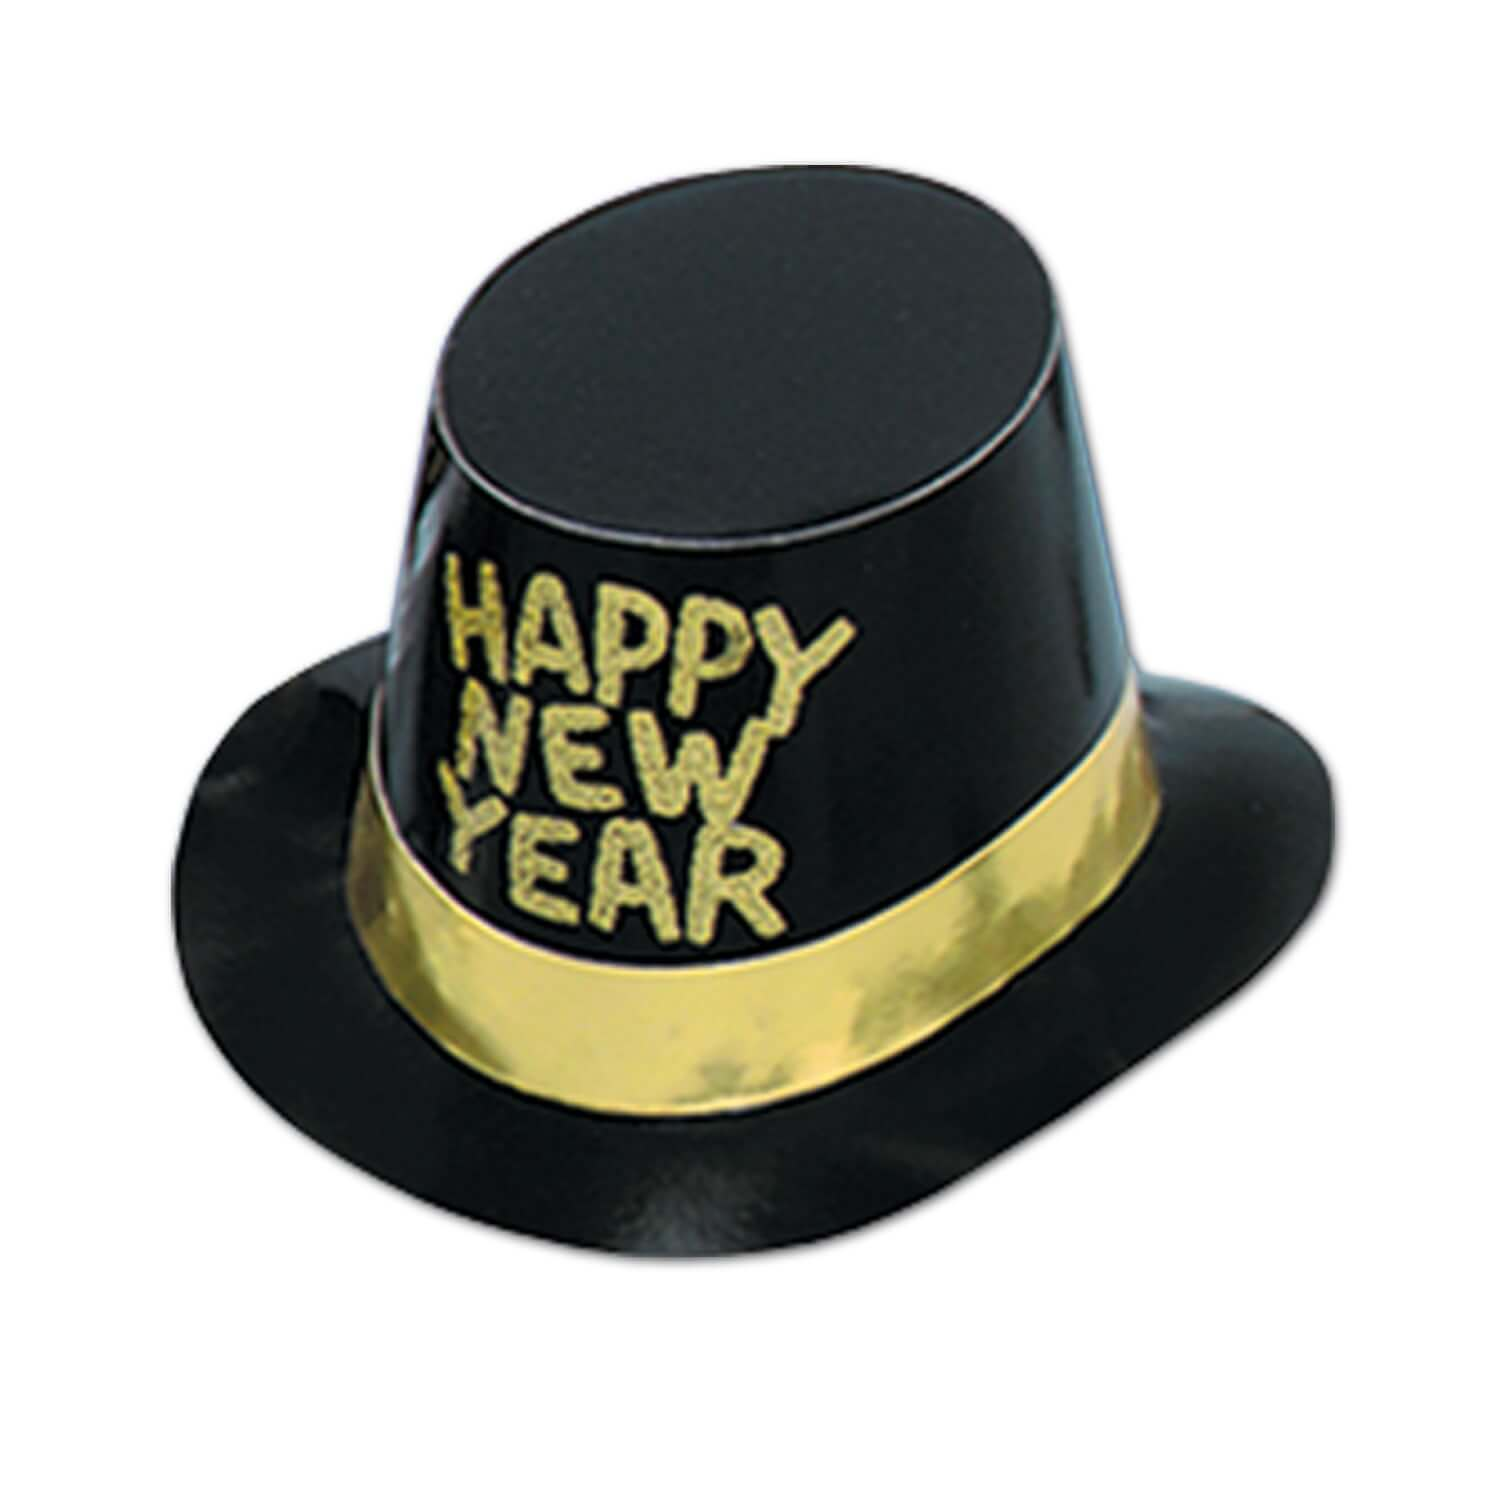 Black Glittered Happy New Year Hats (Pack of 25) Hats, Hi-Hats, Glitter, New Years Eve, Favor, Party, Wearable, Guests, Inexpensive, Bulk, Wholesale, Party Supplies, Party Decorations